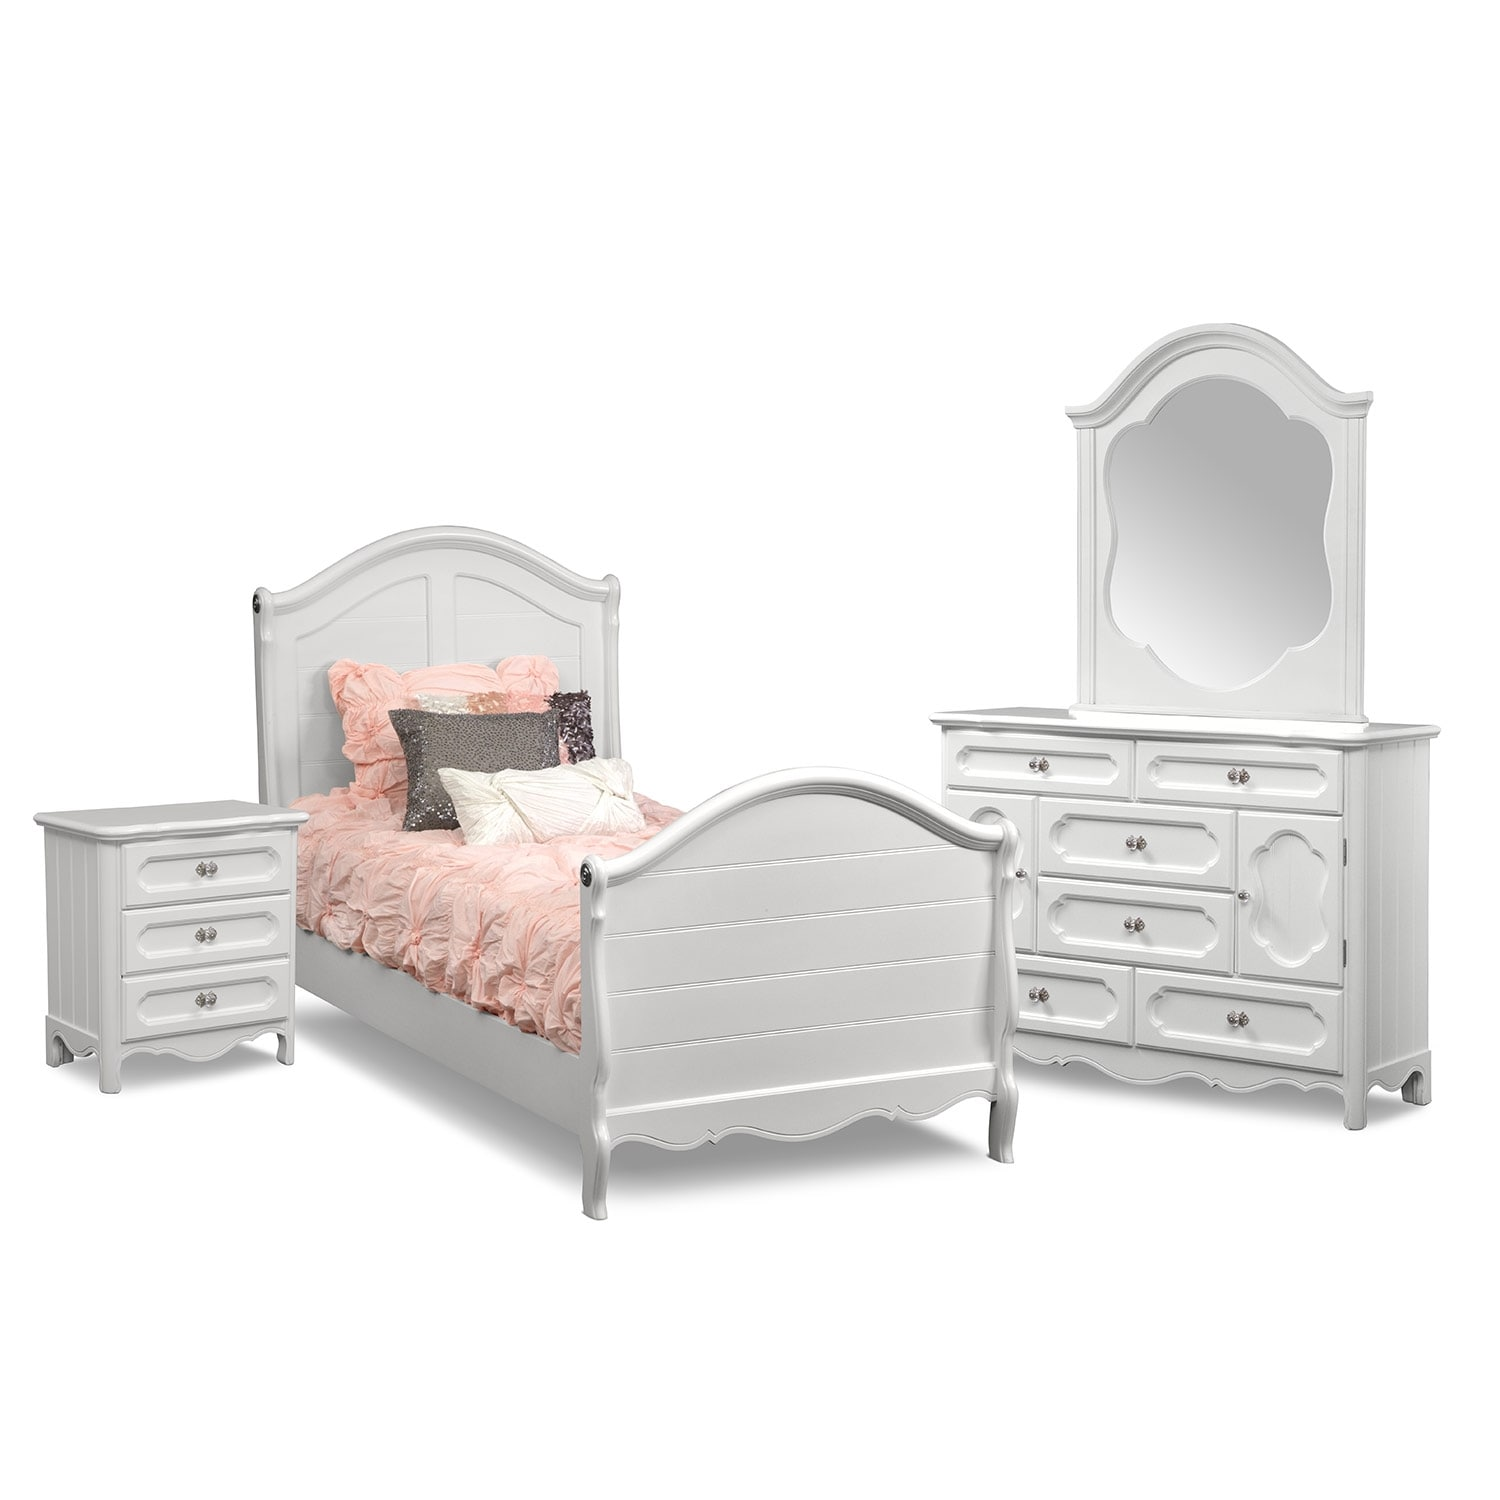 Kids Furniture Carly 6 Piece Twin Bedroom Set White